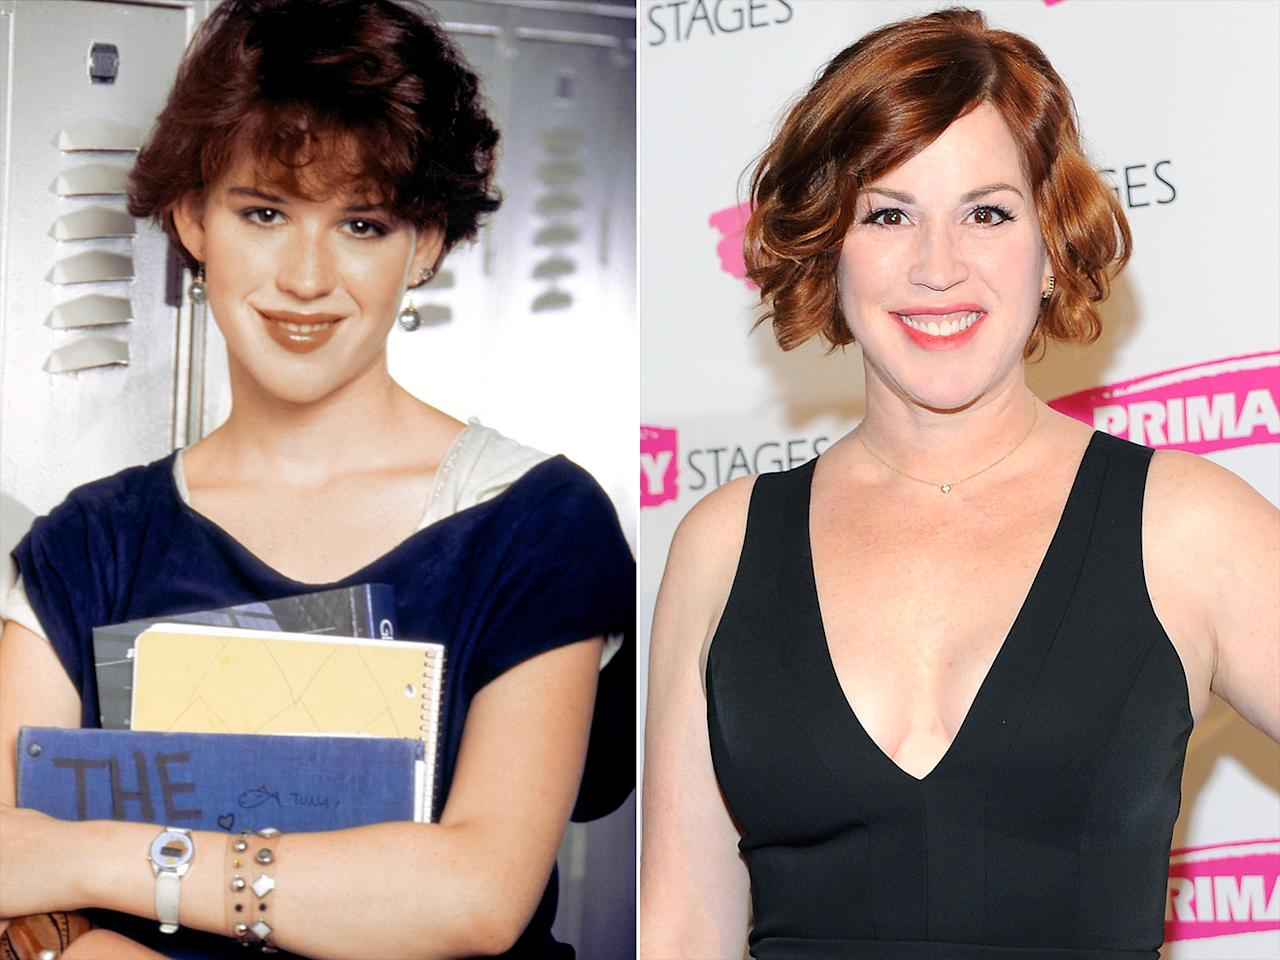 """<p>Ringwald, 49, has been one of the best at keeping her name in the news since her slew of '80s hits, earning a steady stream of credits before making a splash on ABC Family's <em>The Secret Life of the American Teenager </em>and <em>Raising Expectations</em> in recent years. In late March, her former costar Andrew McCarthy <a rel=""""nofollow"""" href=""""http://people.com/movies/molly-ringwald-to-play-mom-of-andrew-mccarthy-son-new-movie/"""">revealed that Ringwald would be playing his 15-year-old son Sam's mother</a> in the upcoming movie <em>All These Small Moments. </em>""""She emailed me on the first day and she said, 'Your son just did a scene and when he walked away, it was just like watching you walk away from me 30 years ago,' """" McCarthy recalled on <em>The MOMS</em>. Ringwald has three children with husband Panio Gianopoulos, whom she married in 2007.</p>"""